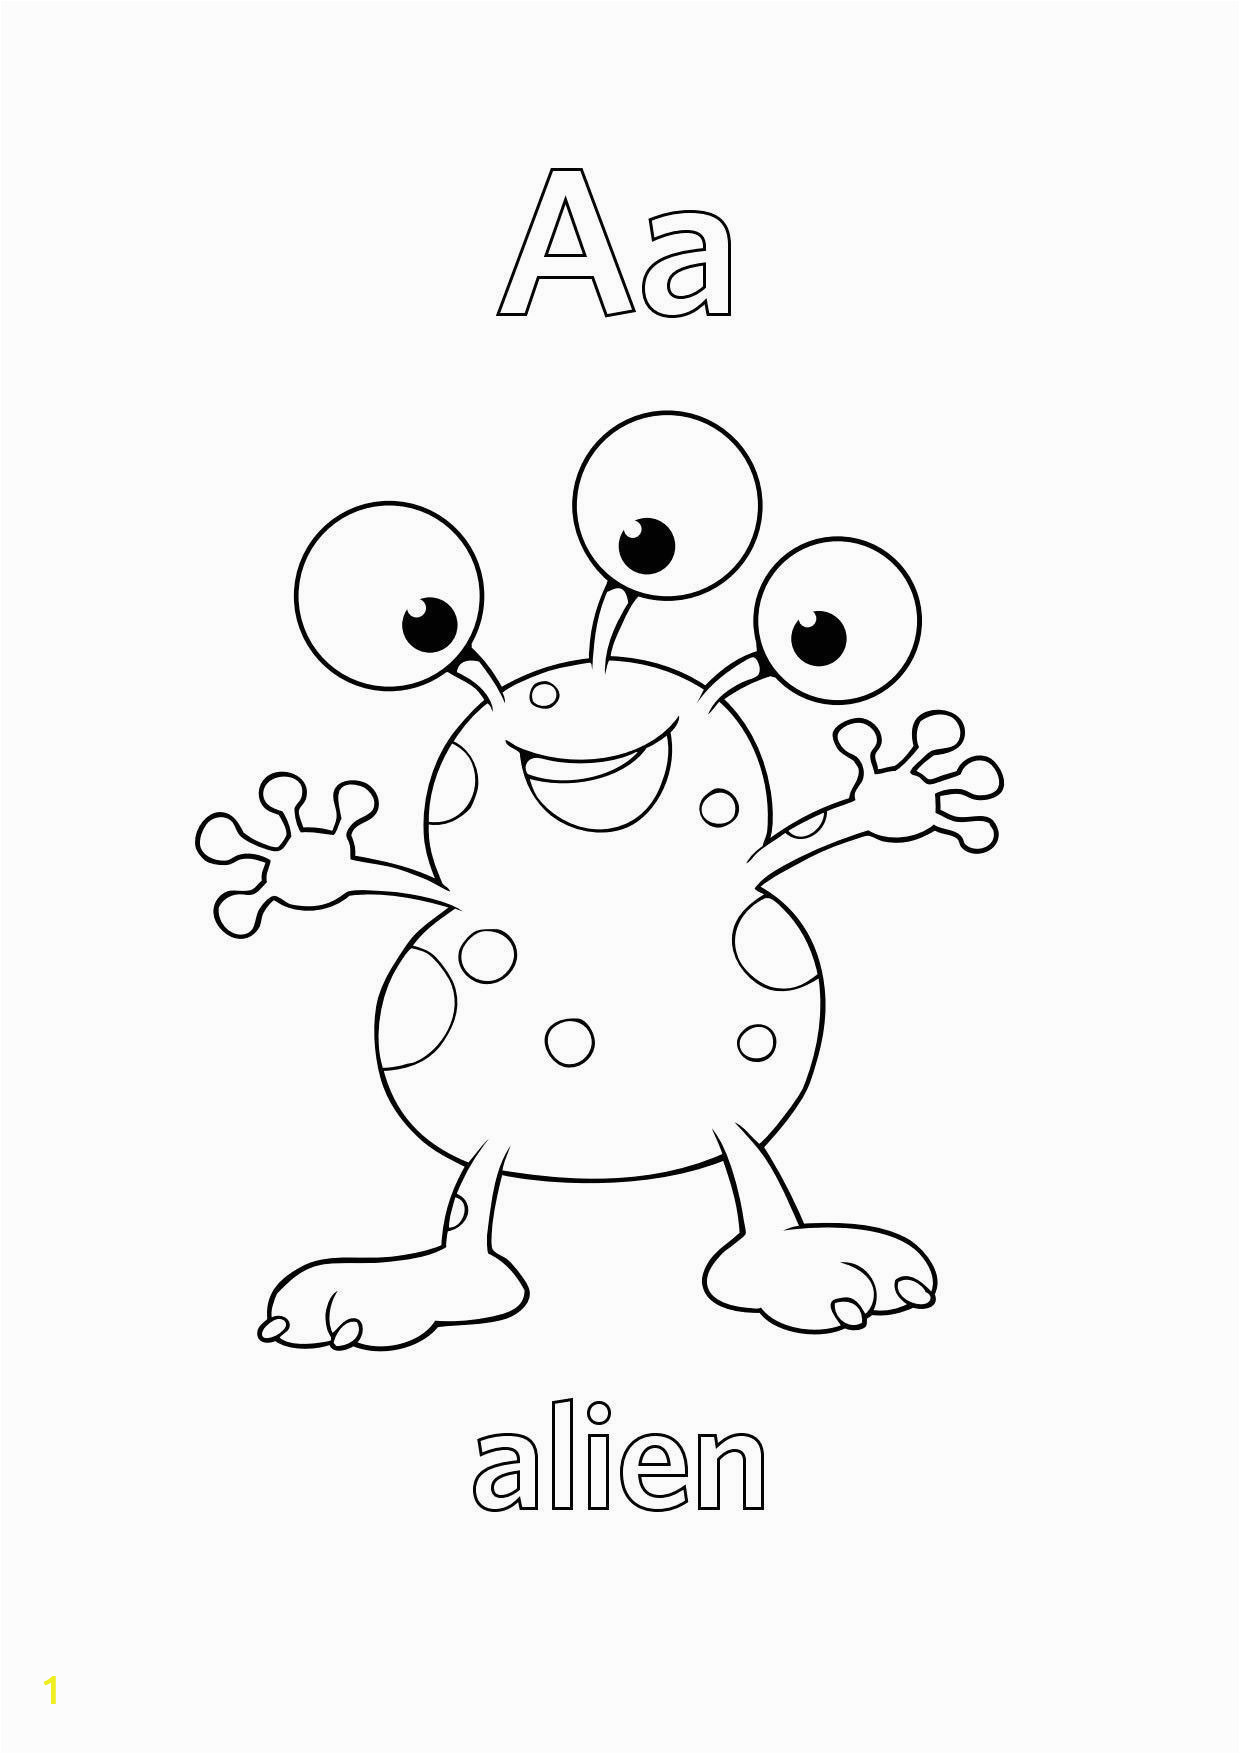 coloring pages for middle school students fresh alphabet worksheet alphabet letters coloring worksheet of coloring pages for middle school students